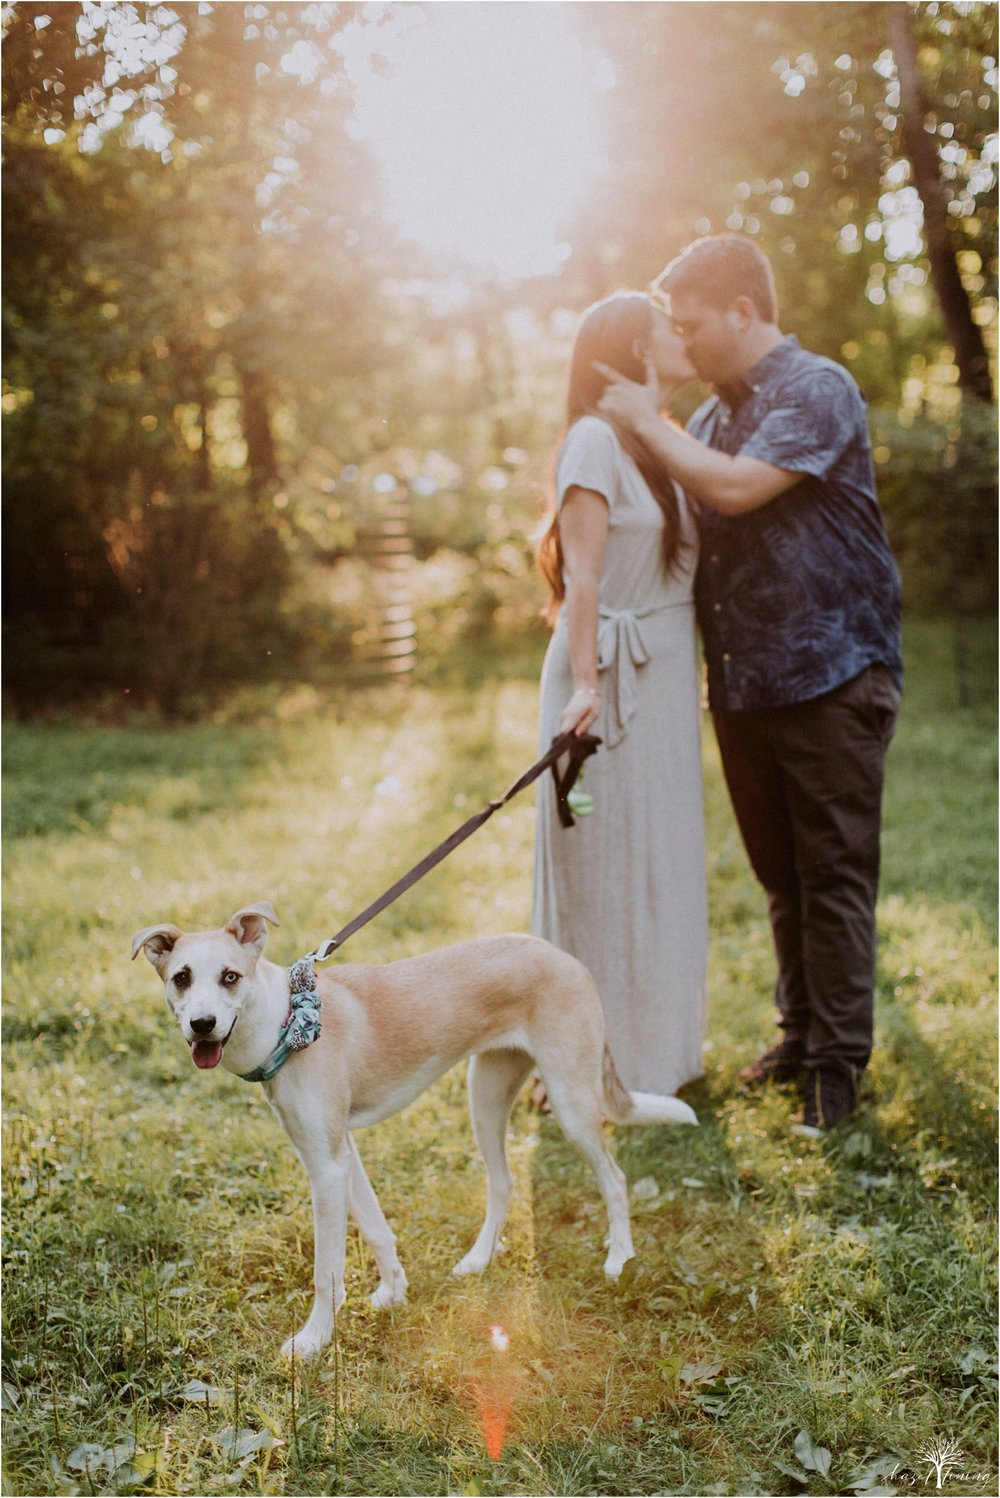 kelsey-delaney-kevin-jordan-tyler-state-park-newtown-pennsylvania-golden-hour-sunset-engagement-session-hazel-lining-travel-wedding-elopement-photography_0086.jpg